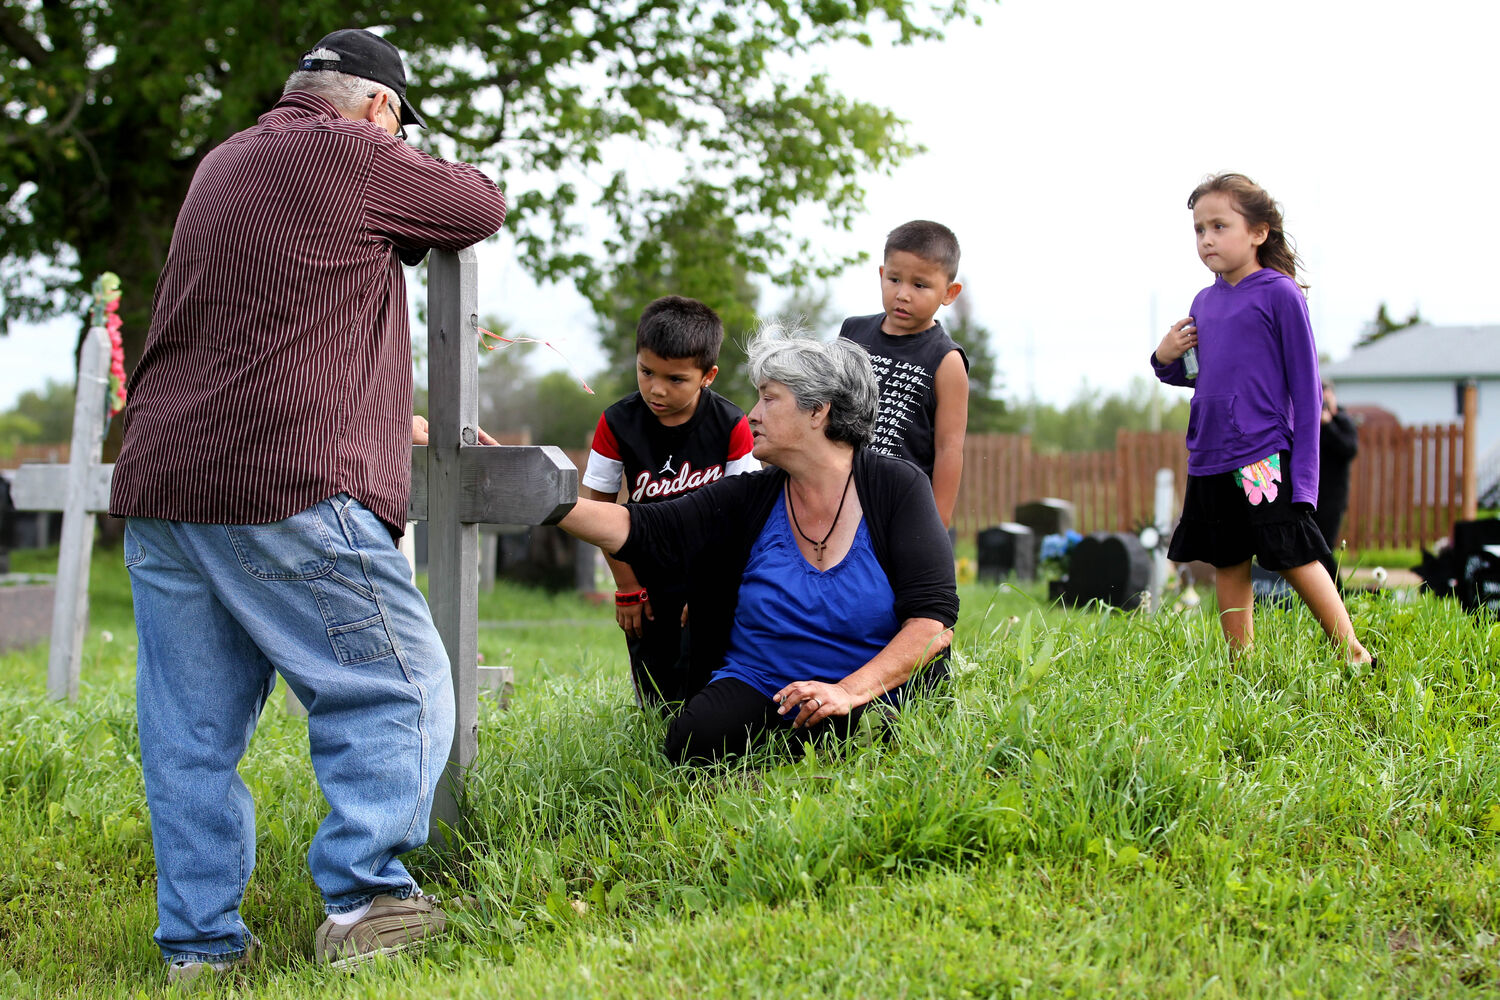 After the funeral for Tina Fontaine Saturday in Sagkeeng First Nation her grandmother, Thelma Favel, sat at the grave site of Tina's father, Eugene Robert Fontaine, the same site Tina Fontaine will be laid to rest in the coming days. Favel broke down into tears while begging her nephew's forgiveness for the death of Tina.